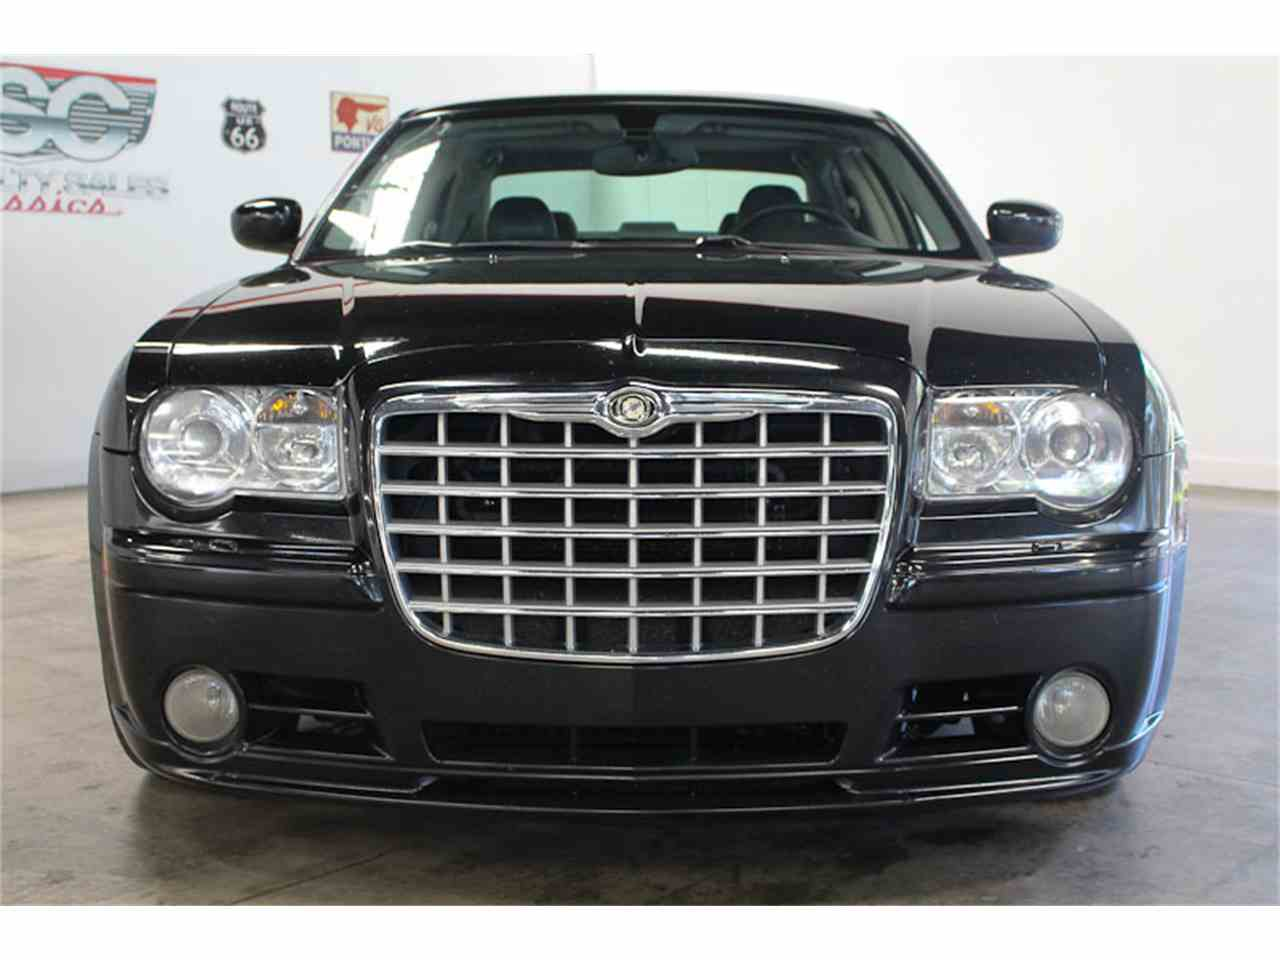 Large Picture of '07 Chrysler 200 located in California - $12,990.00 - LS4P